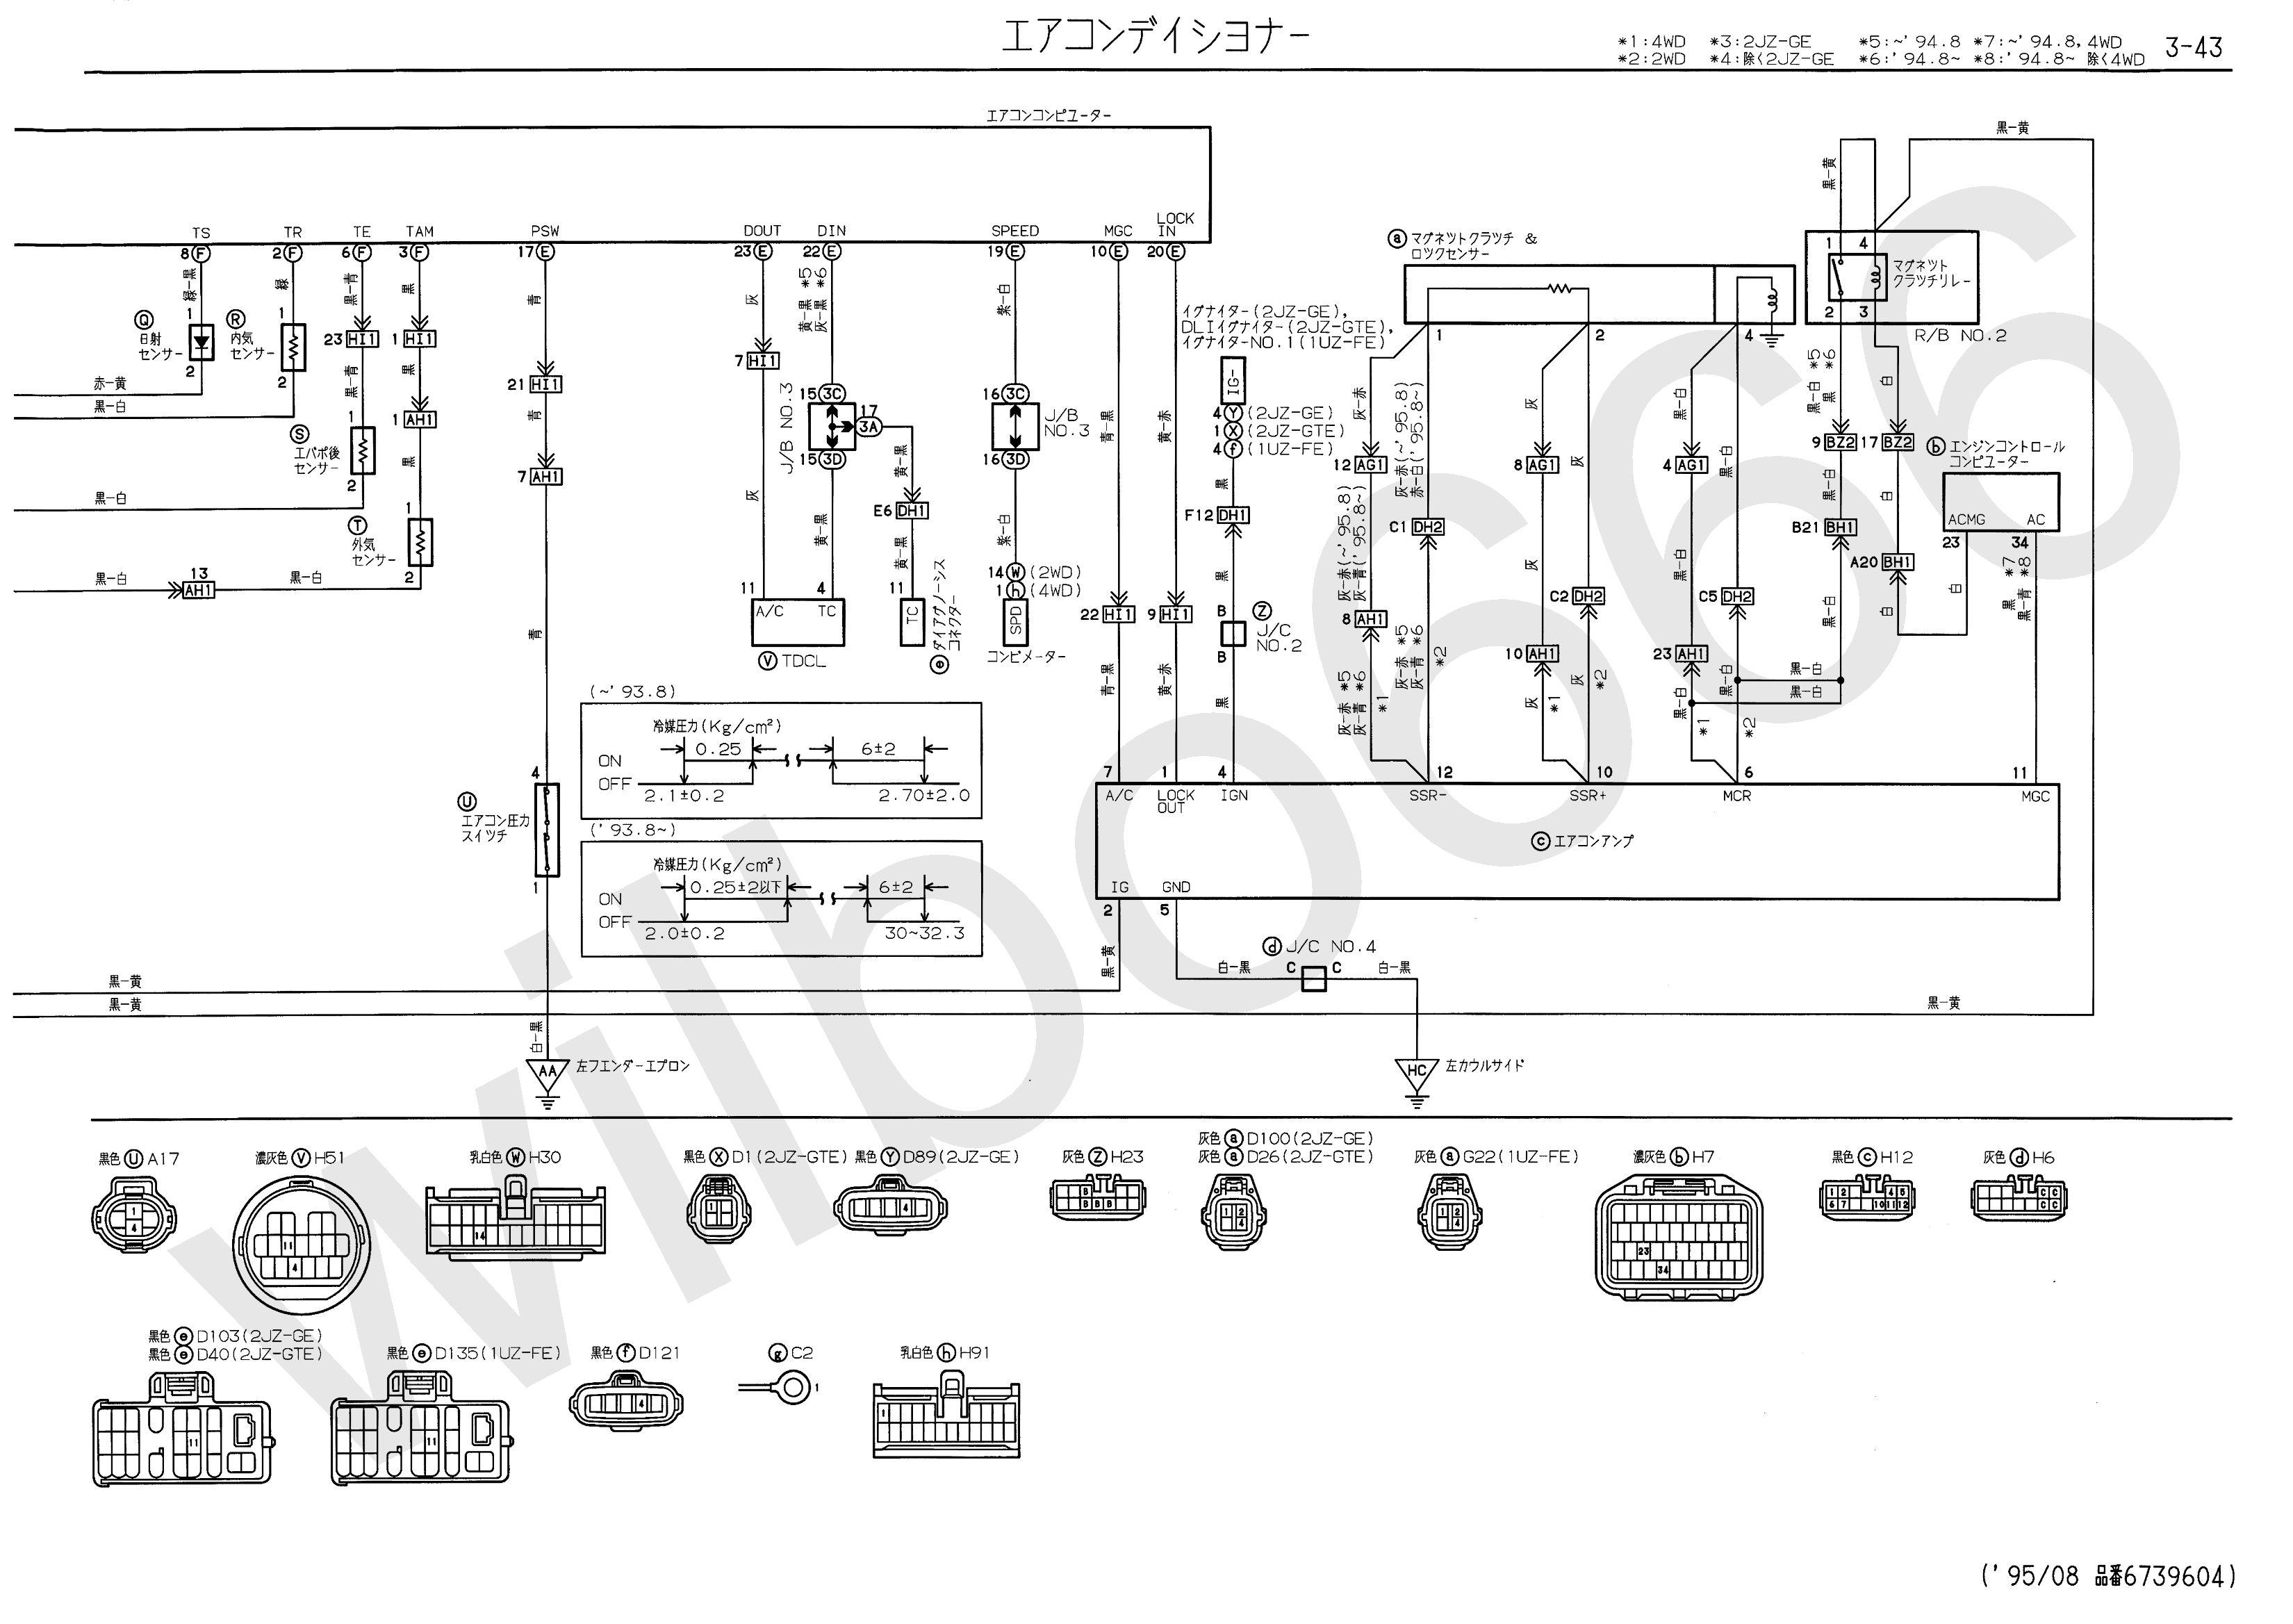 01 Toyota Camry Electrical Wiring Diagram Library. Toyota Ignition Igniter Wiring Diagram Get Free 2001 Camry. Wiring. Camry Tps Wiring Diagram At Scoala.co